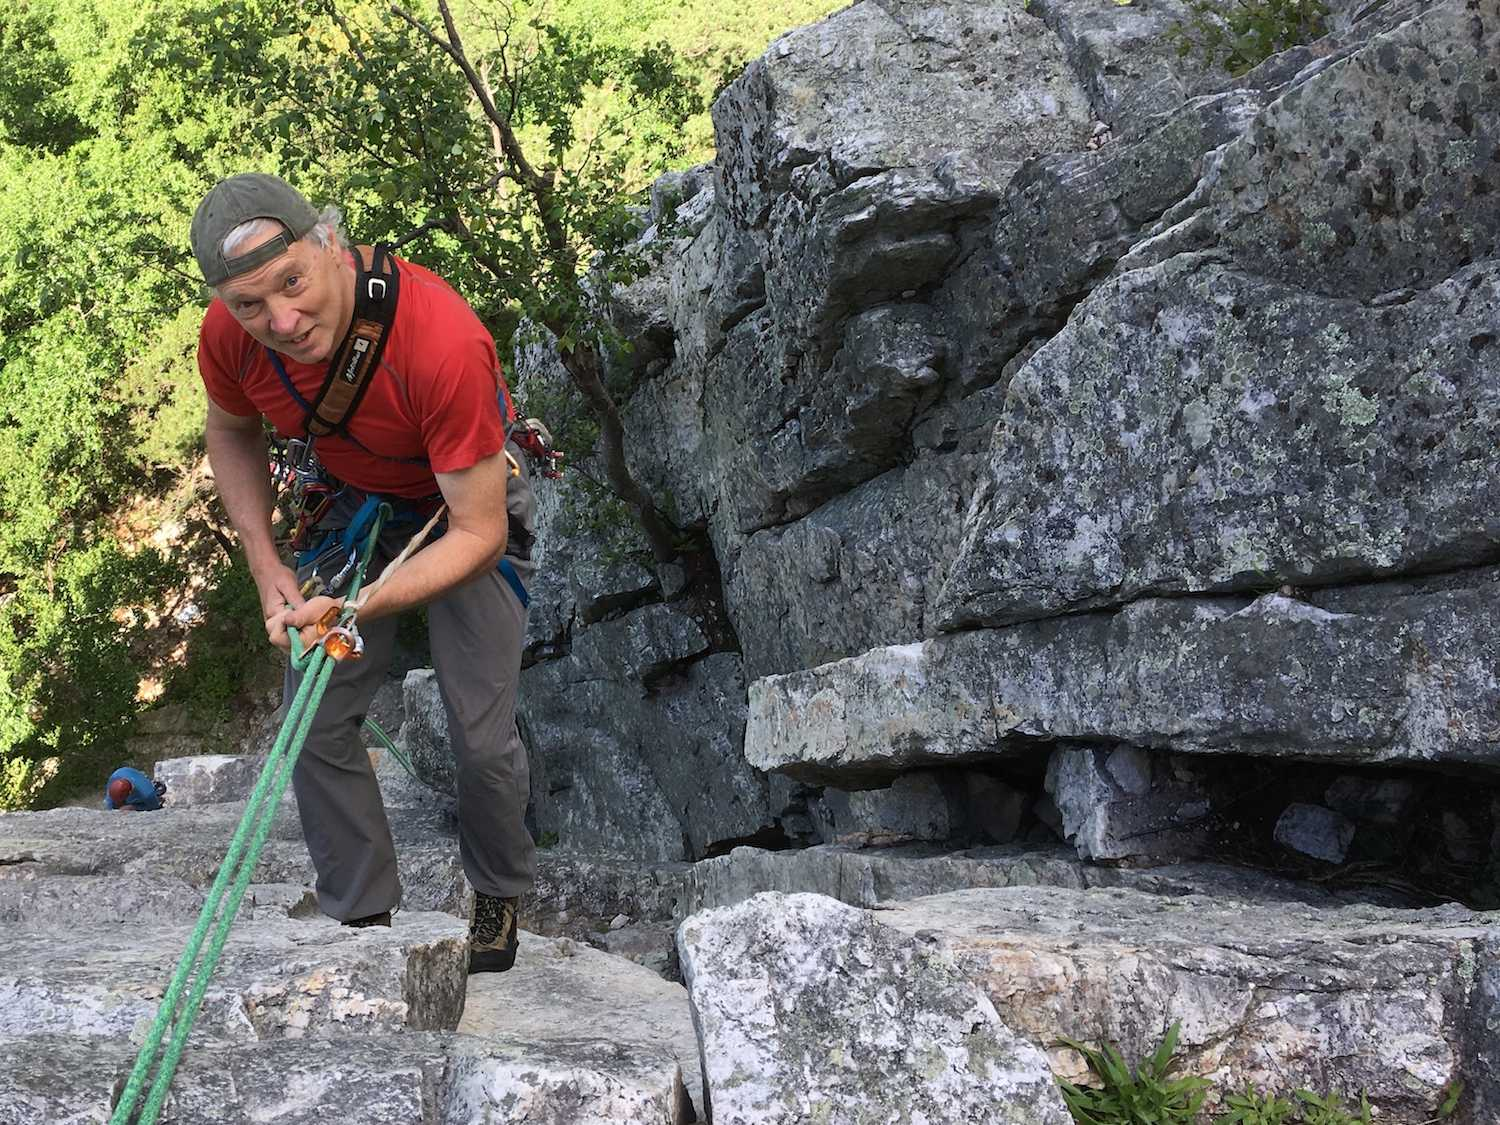 West Virginia Peaks Draw Experienced Climbers and Novices